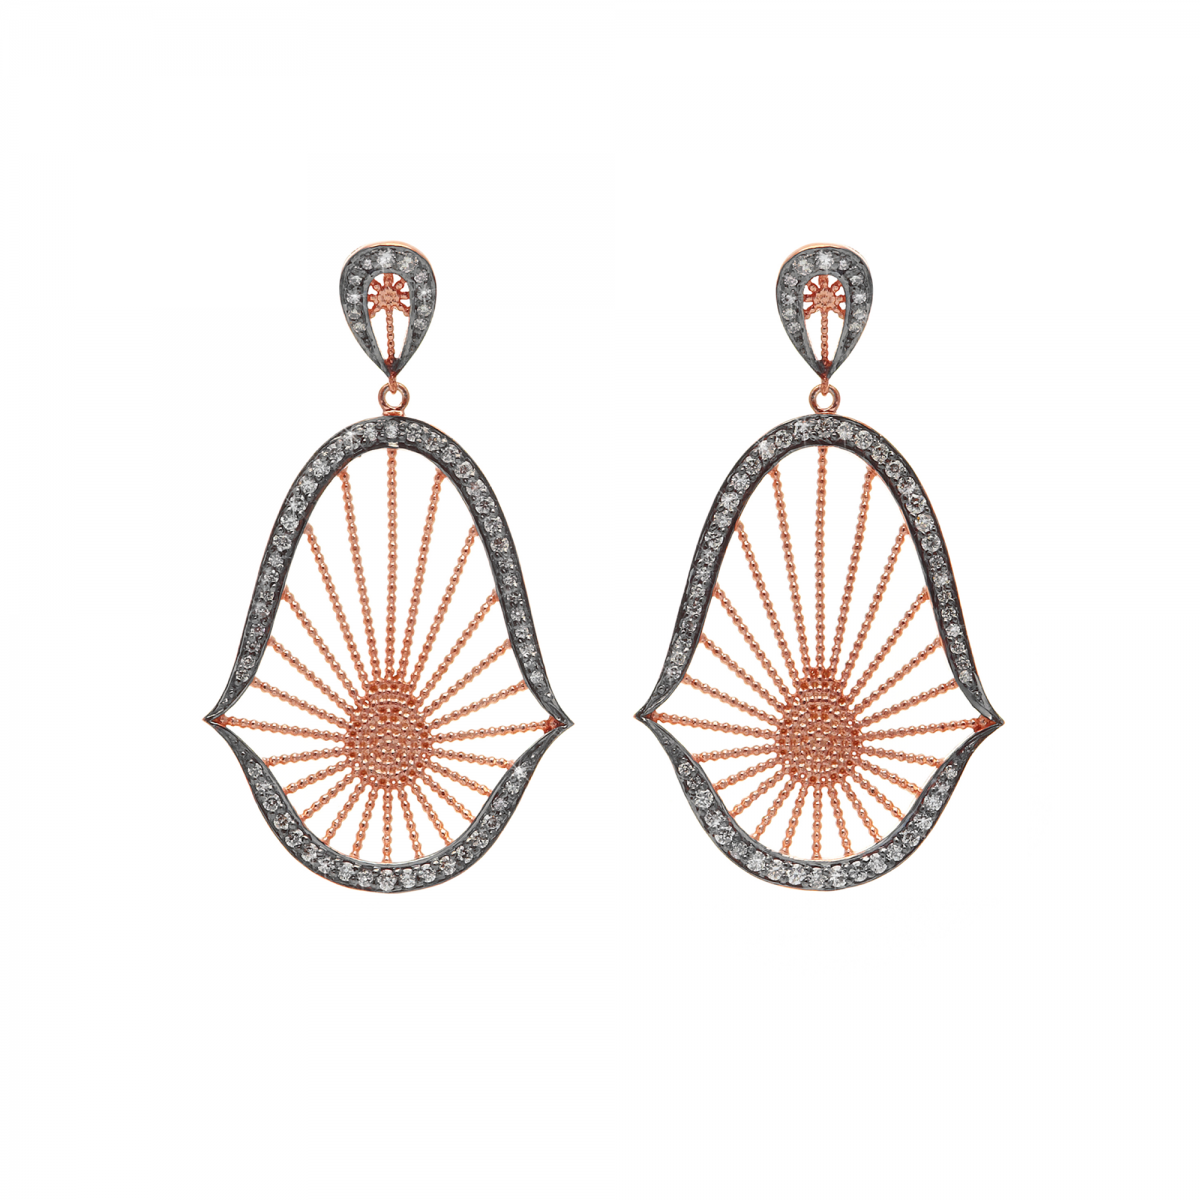 CL – Oriental_Statement_Earrings_in_Rose_Vermeil_and_White_Diamonds_by_Assya